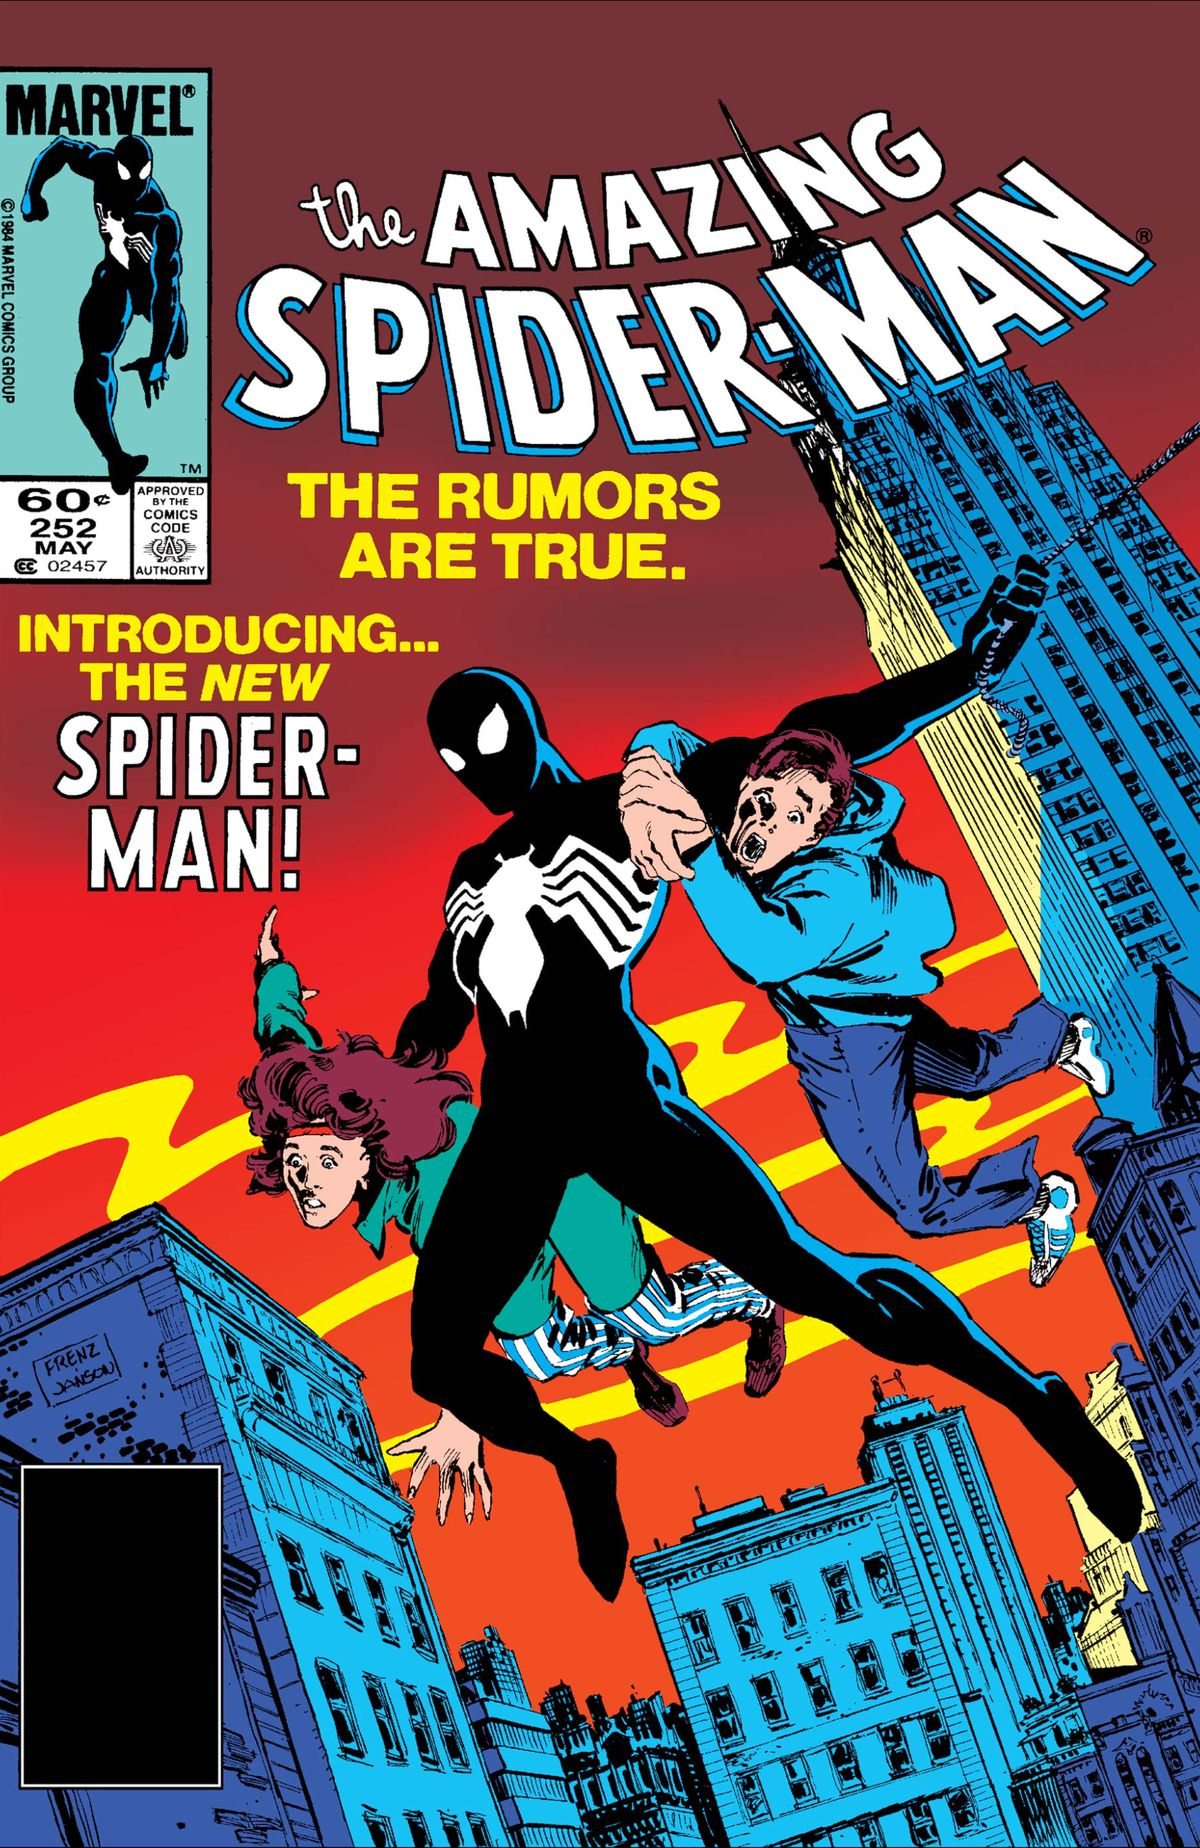 The cover of The Amazing Spider-Man #252, Marvel Comics (1984).